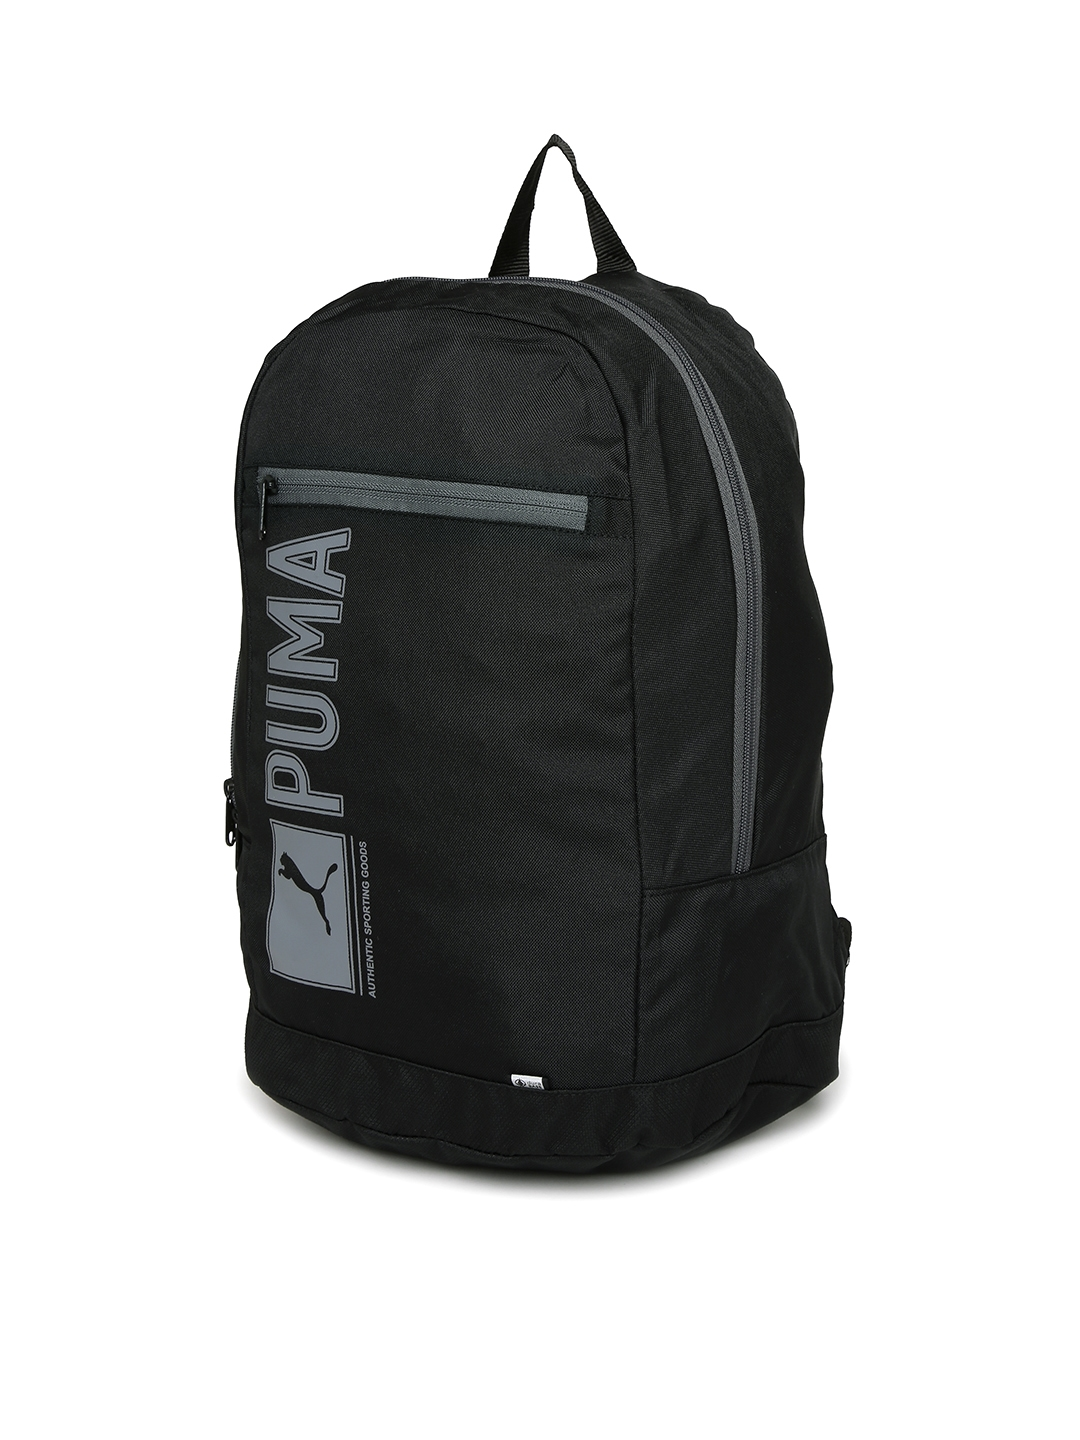 ae5a0c6699a0 Buy PUMA Unisex Black Pioneer Backpack - Backpacks for Unisex ...